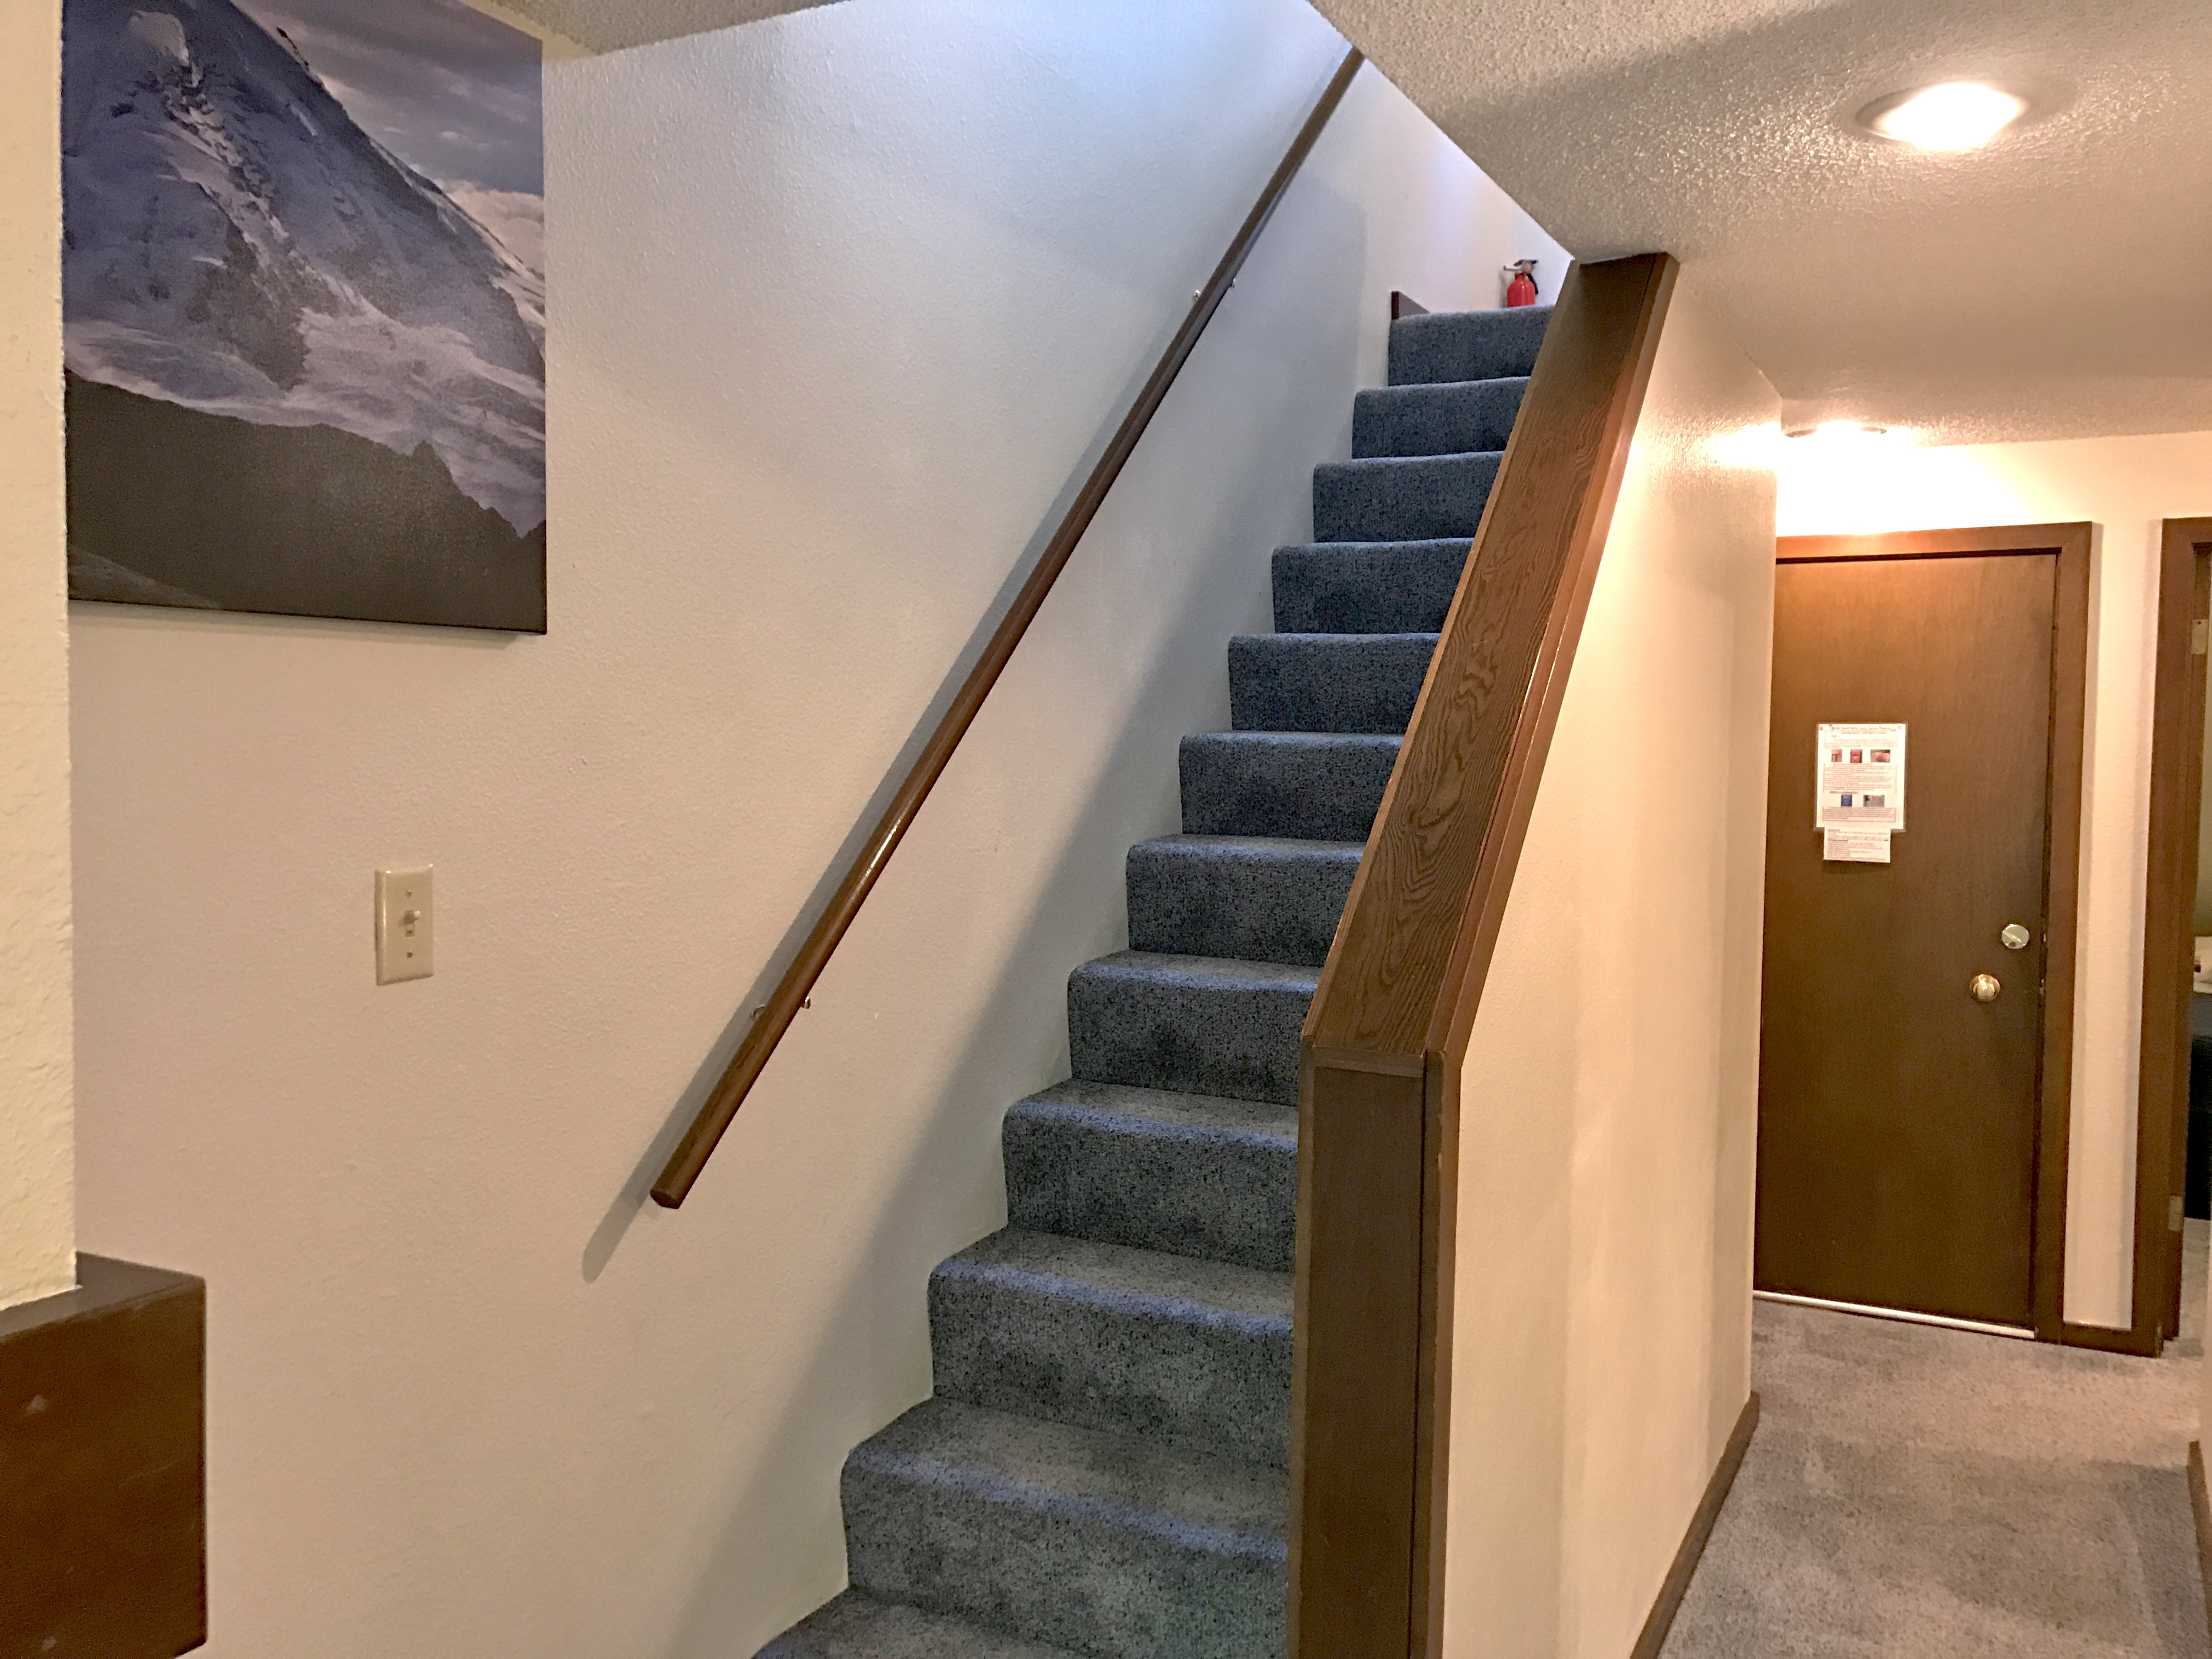 Stairwell up to the loft bedroom